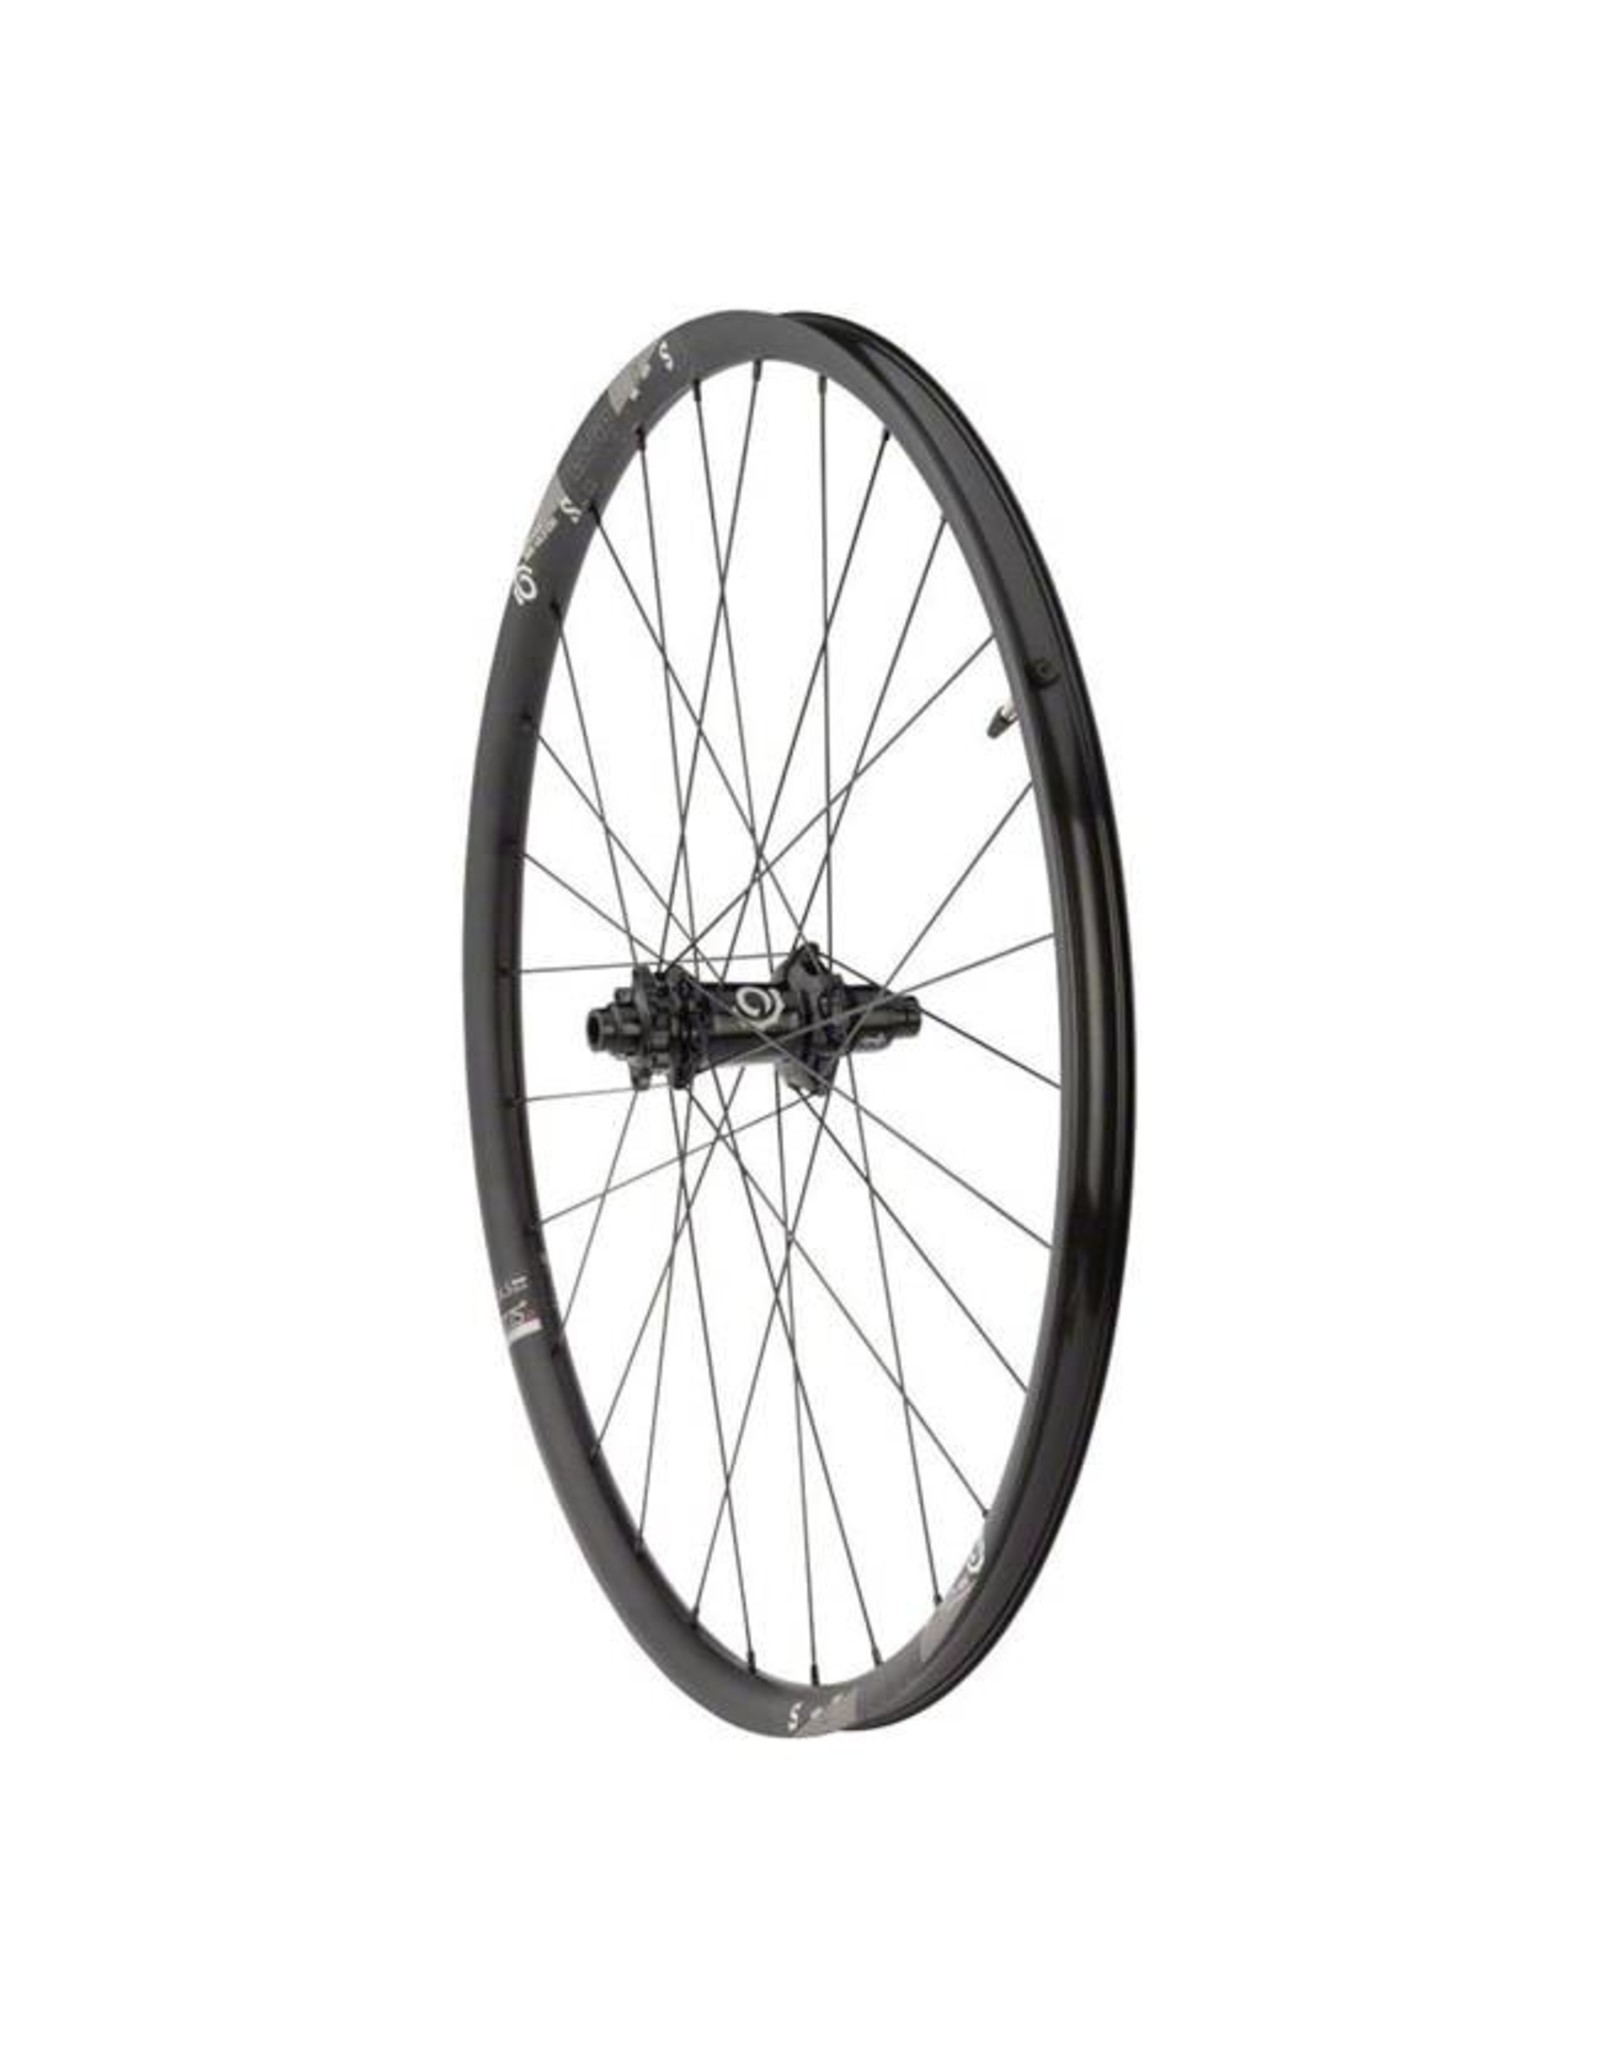 "Industry Nine Industry Nine Trail S Wheelset: 27.5"", 15 x 110mm Thru Axle Boost Front, 12 x 148mm Boost Thru Axle Rear, SRAM XD Freehub, Black"